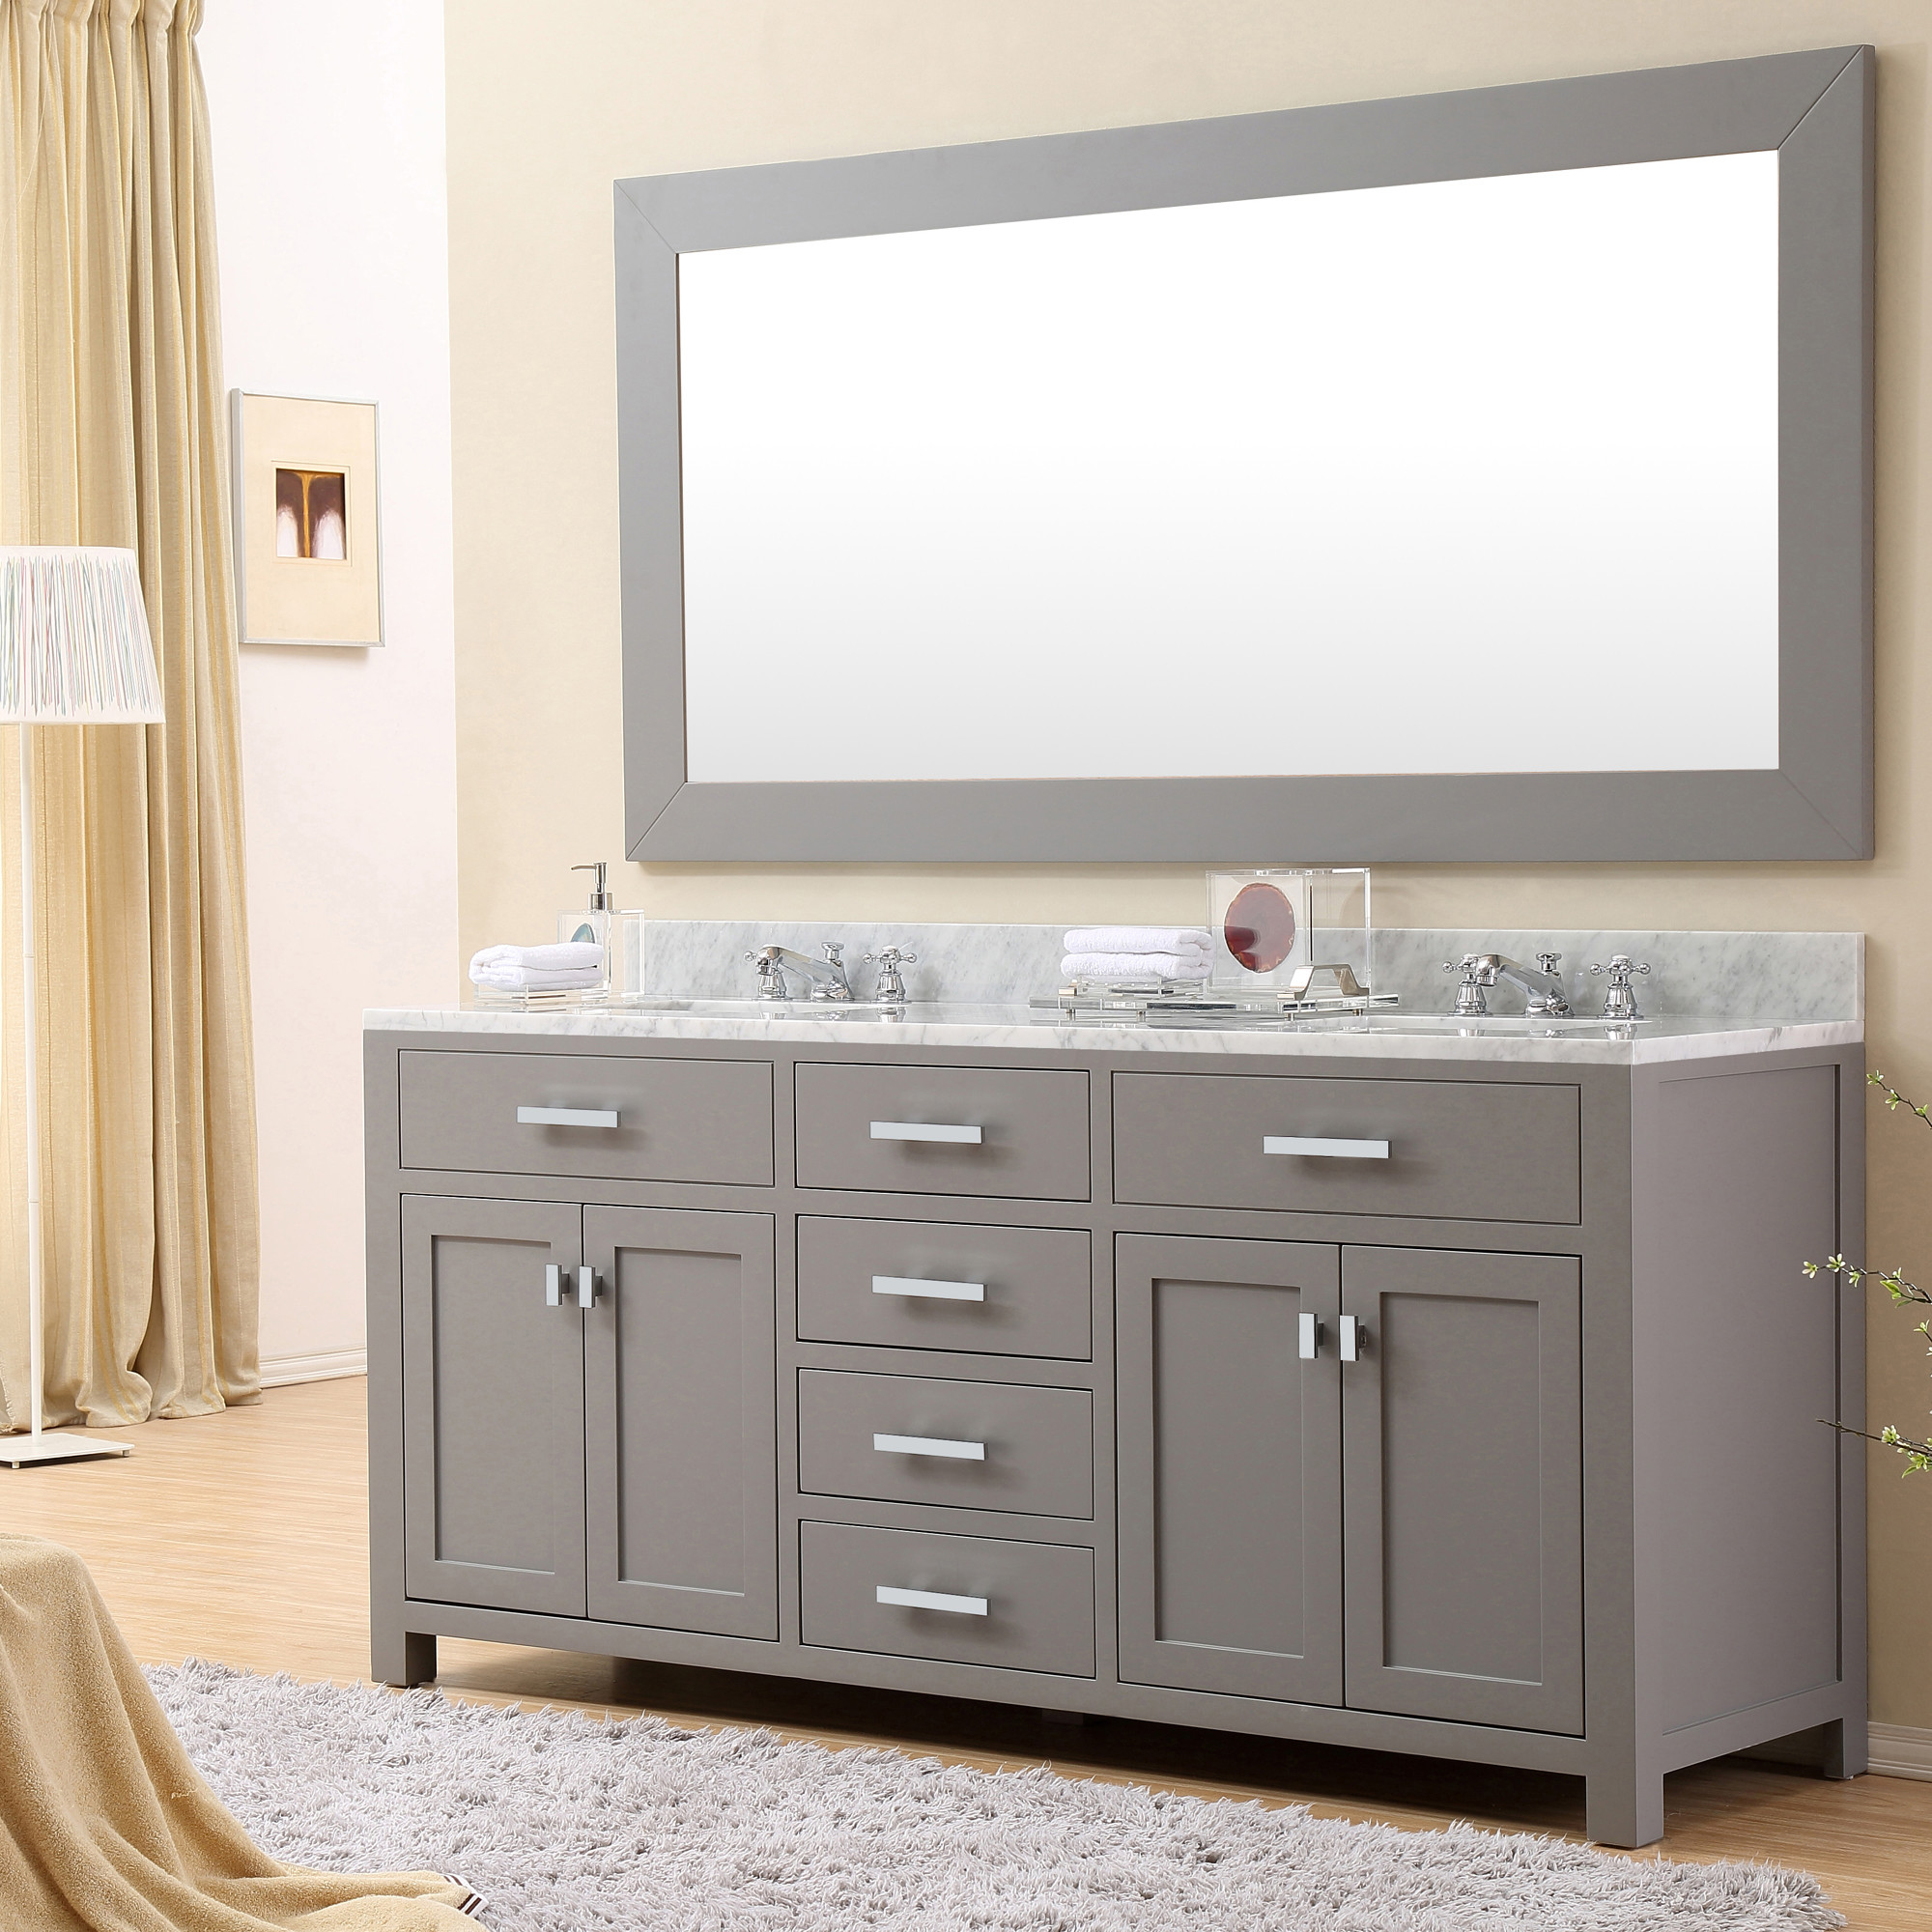 virta quality in constructed vanity wood pin freestanding of essence grey elegantly the